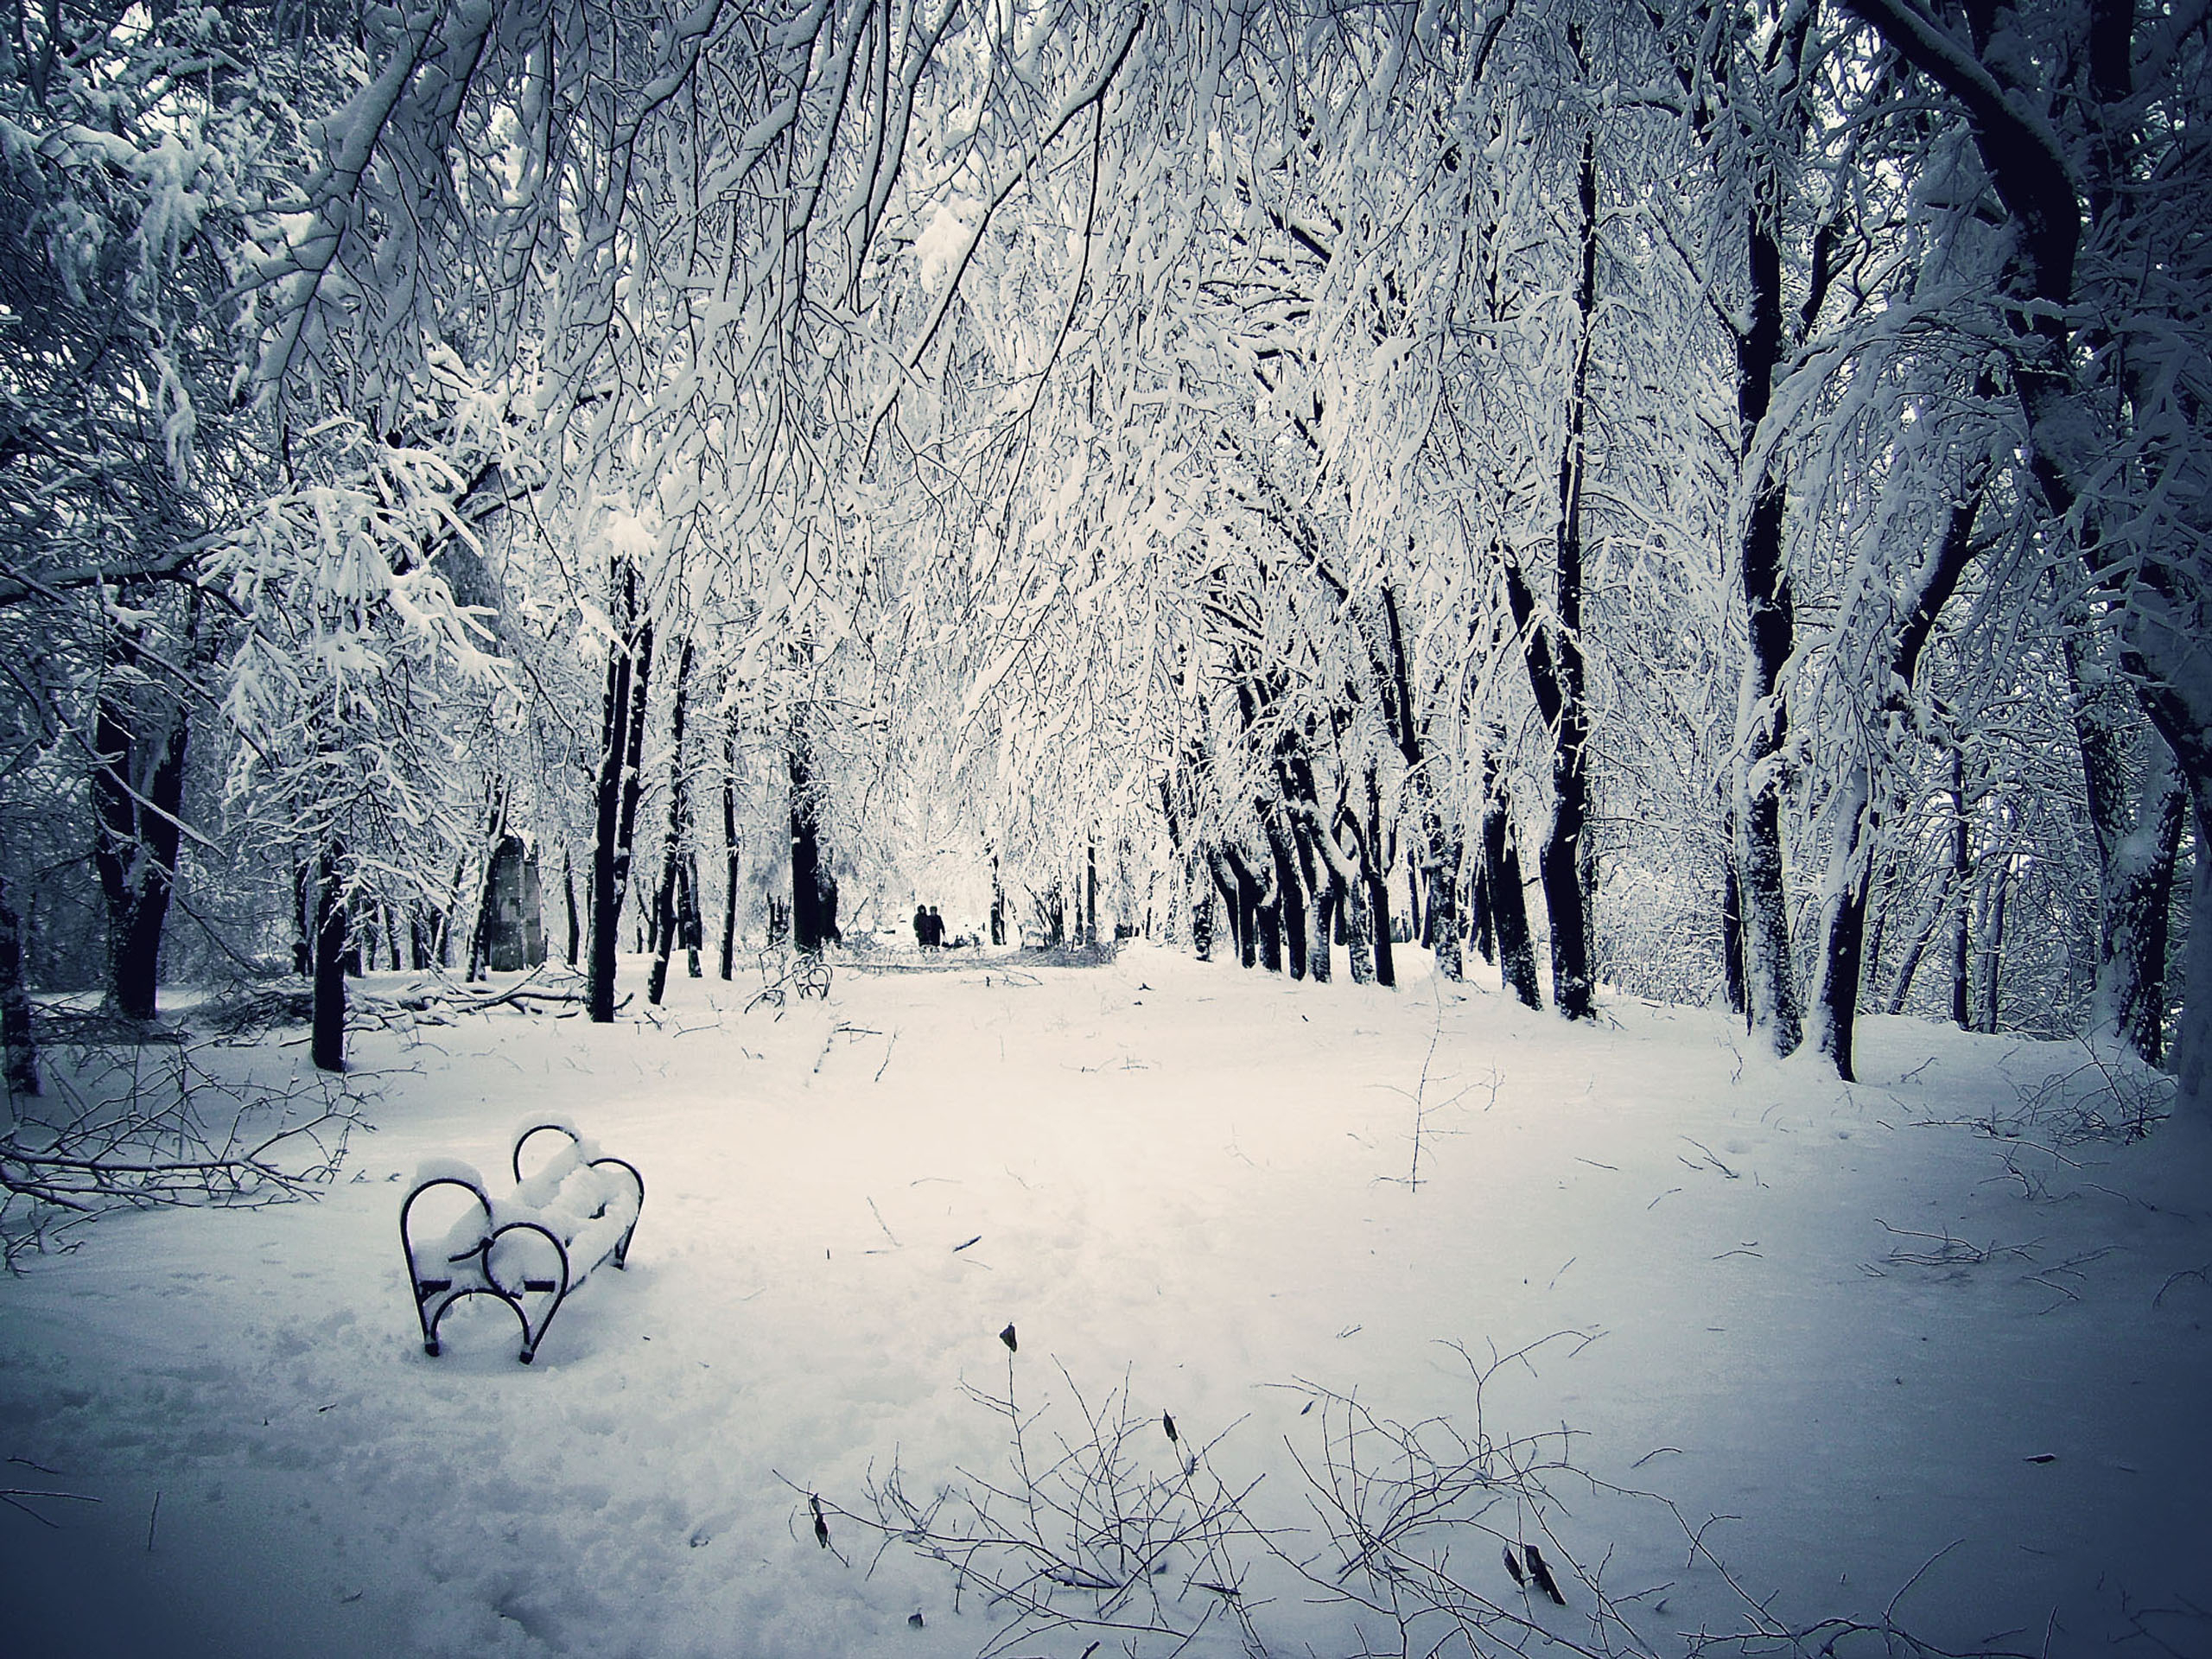 snowy winter scenes wallpaper - wallpapersafari